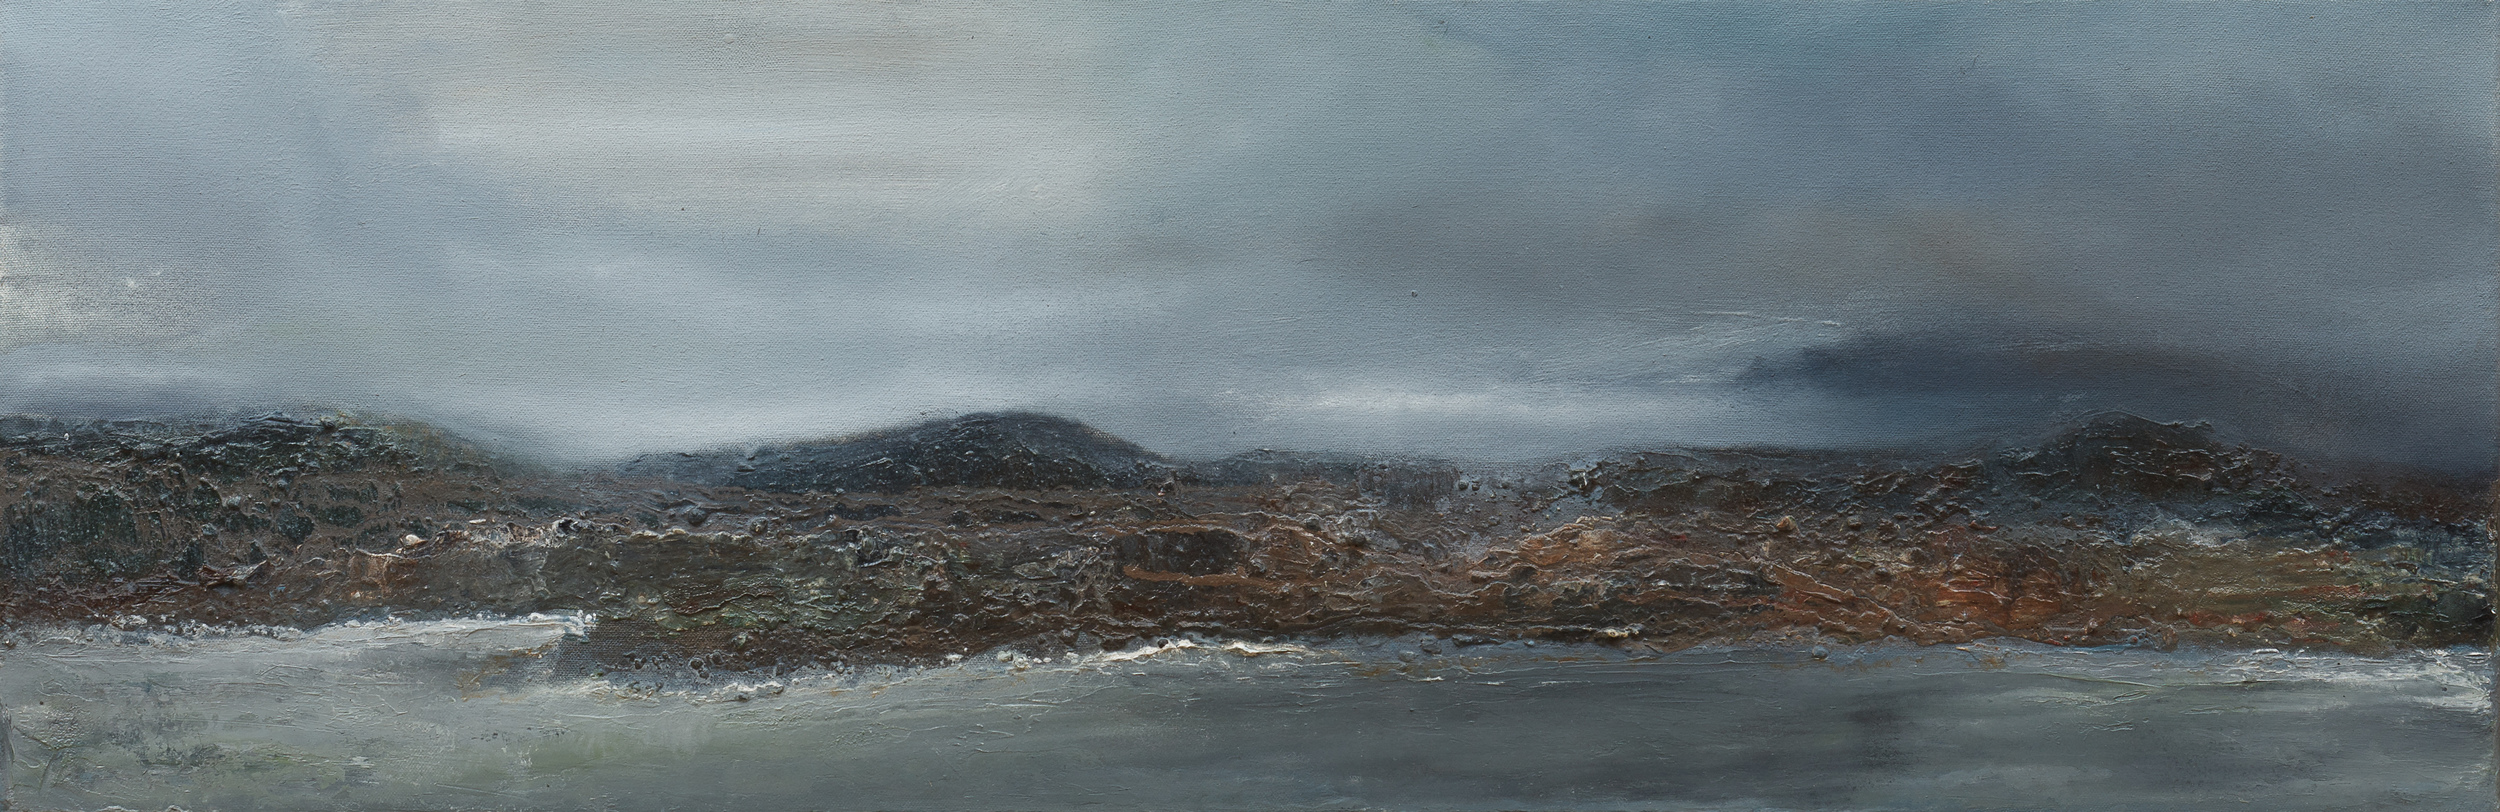 Travelling amidst islands Oil and mixed media on canvas 30x90cm